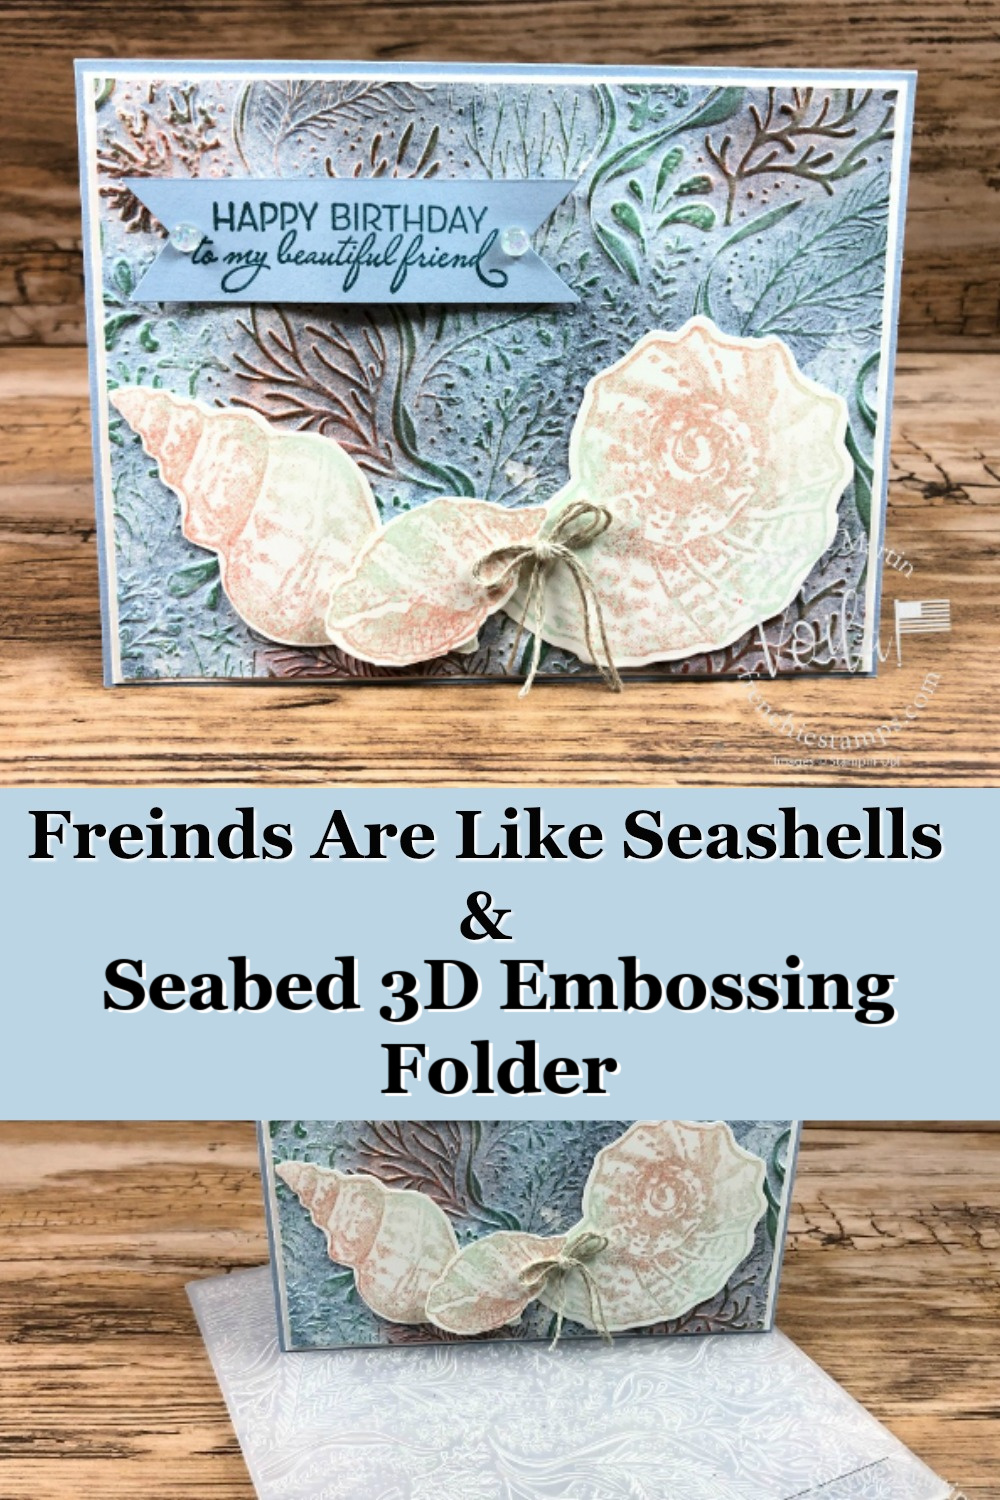 Friends Are Like Seashells Bundle with Seabed 3D Folder